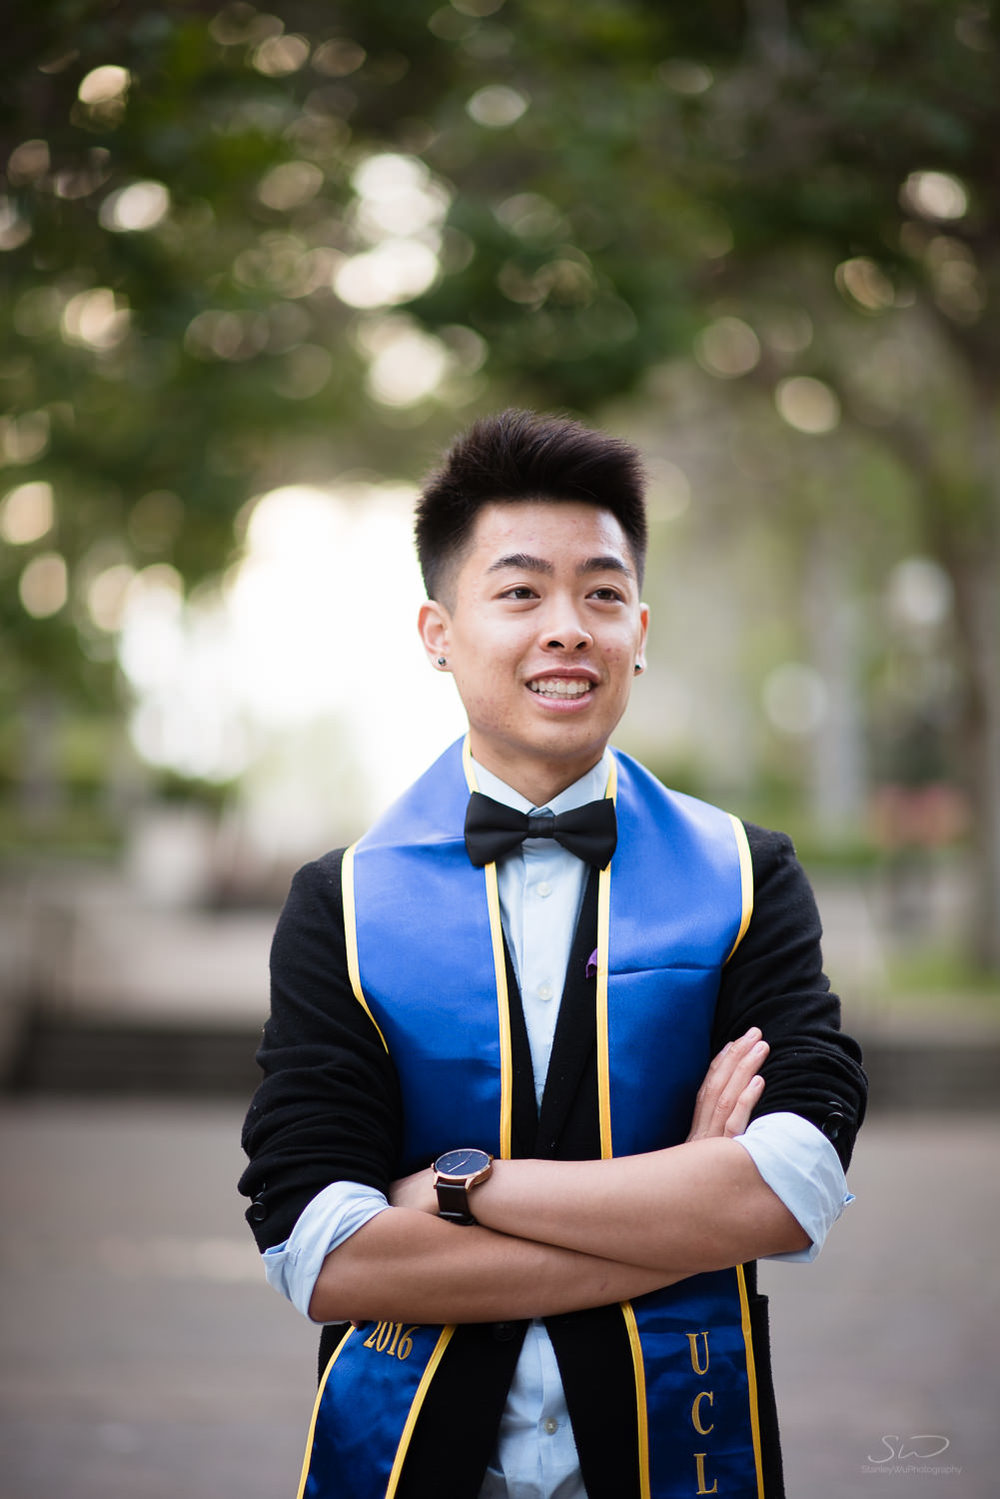 ucla-senior-grad-portraits-2.jpg